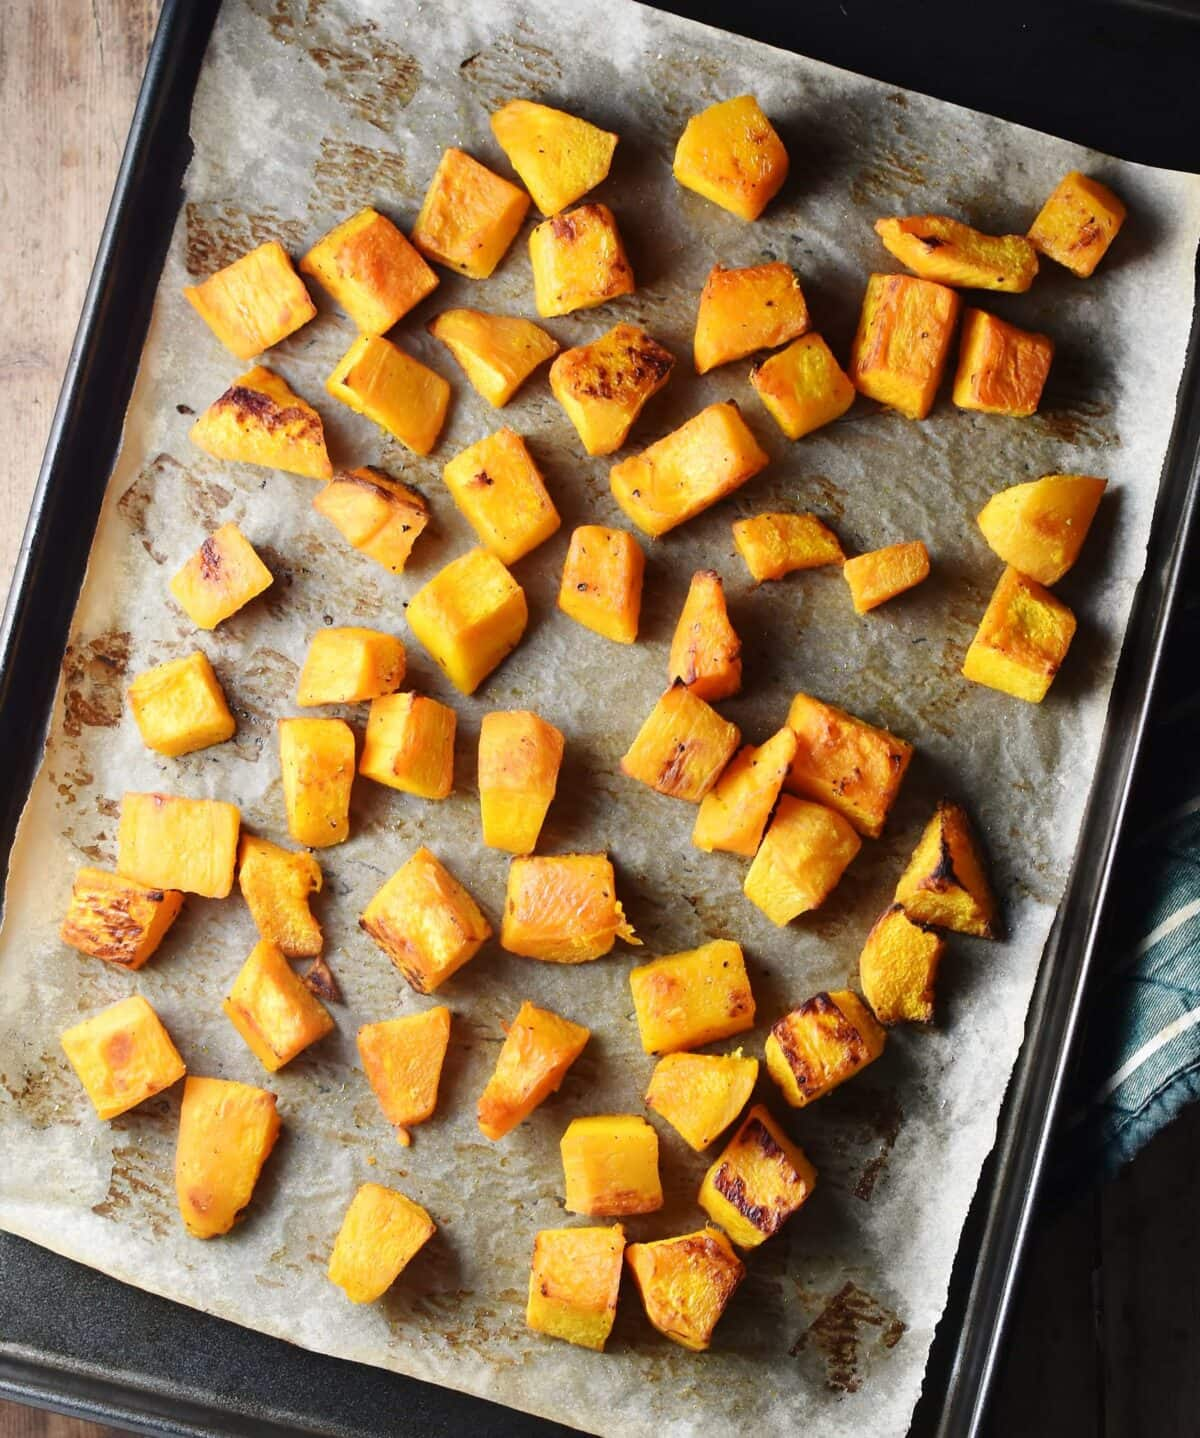 Roasted pumpkin cubes on top of baking sheet lined with parchment paper.